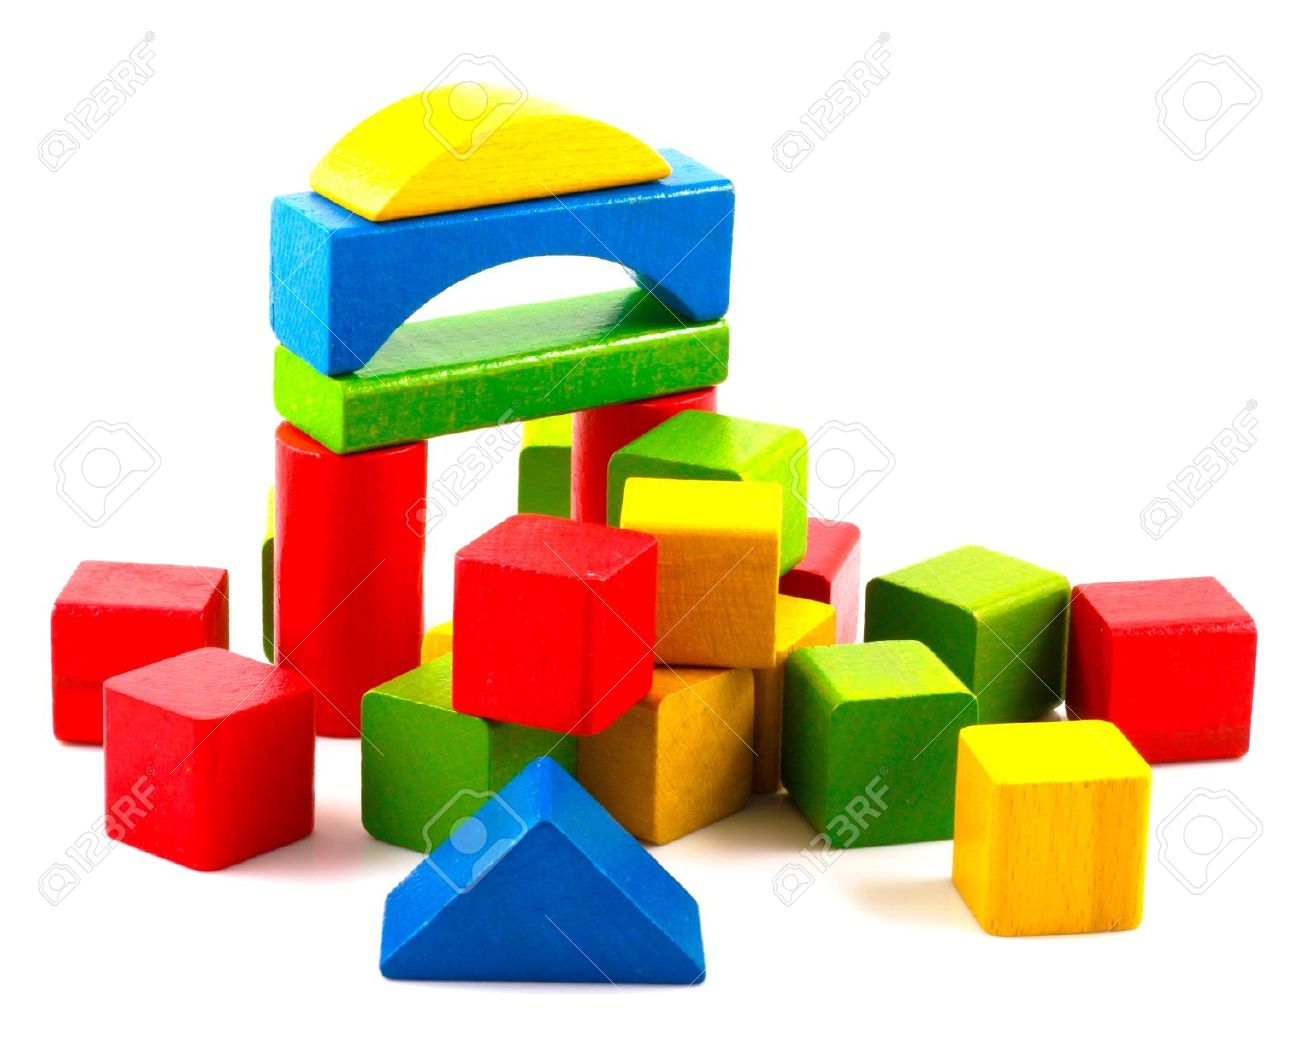 Wooden building blocks .